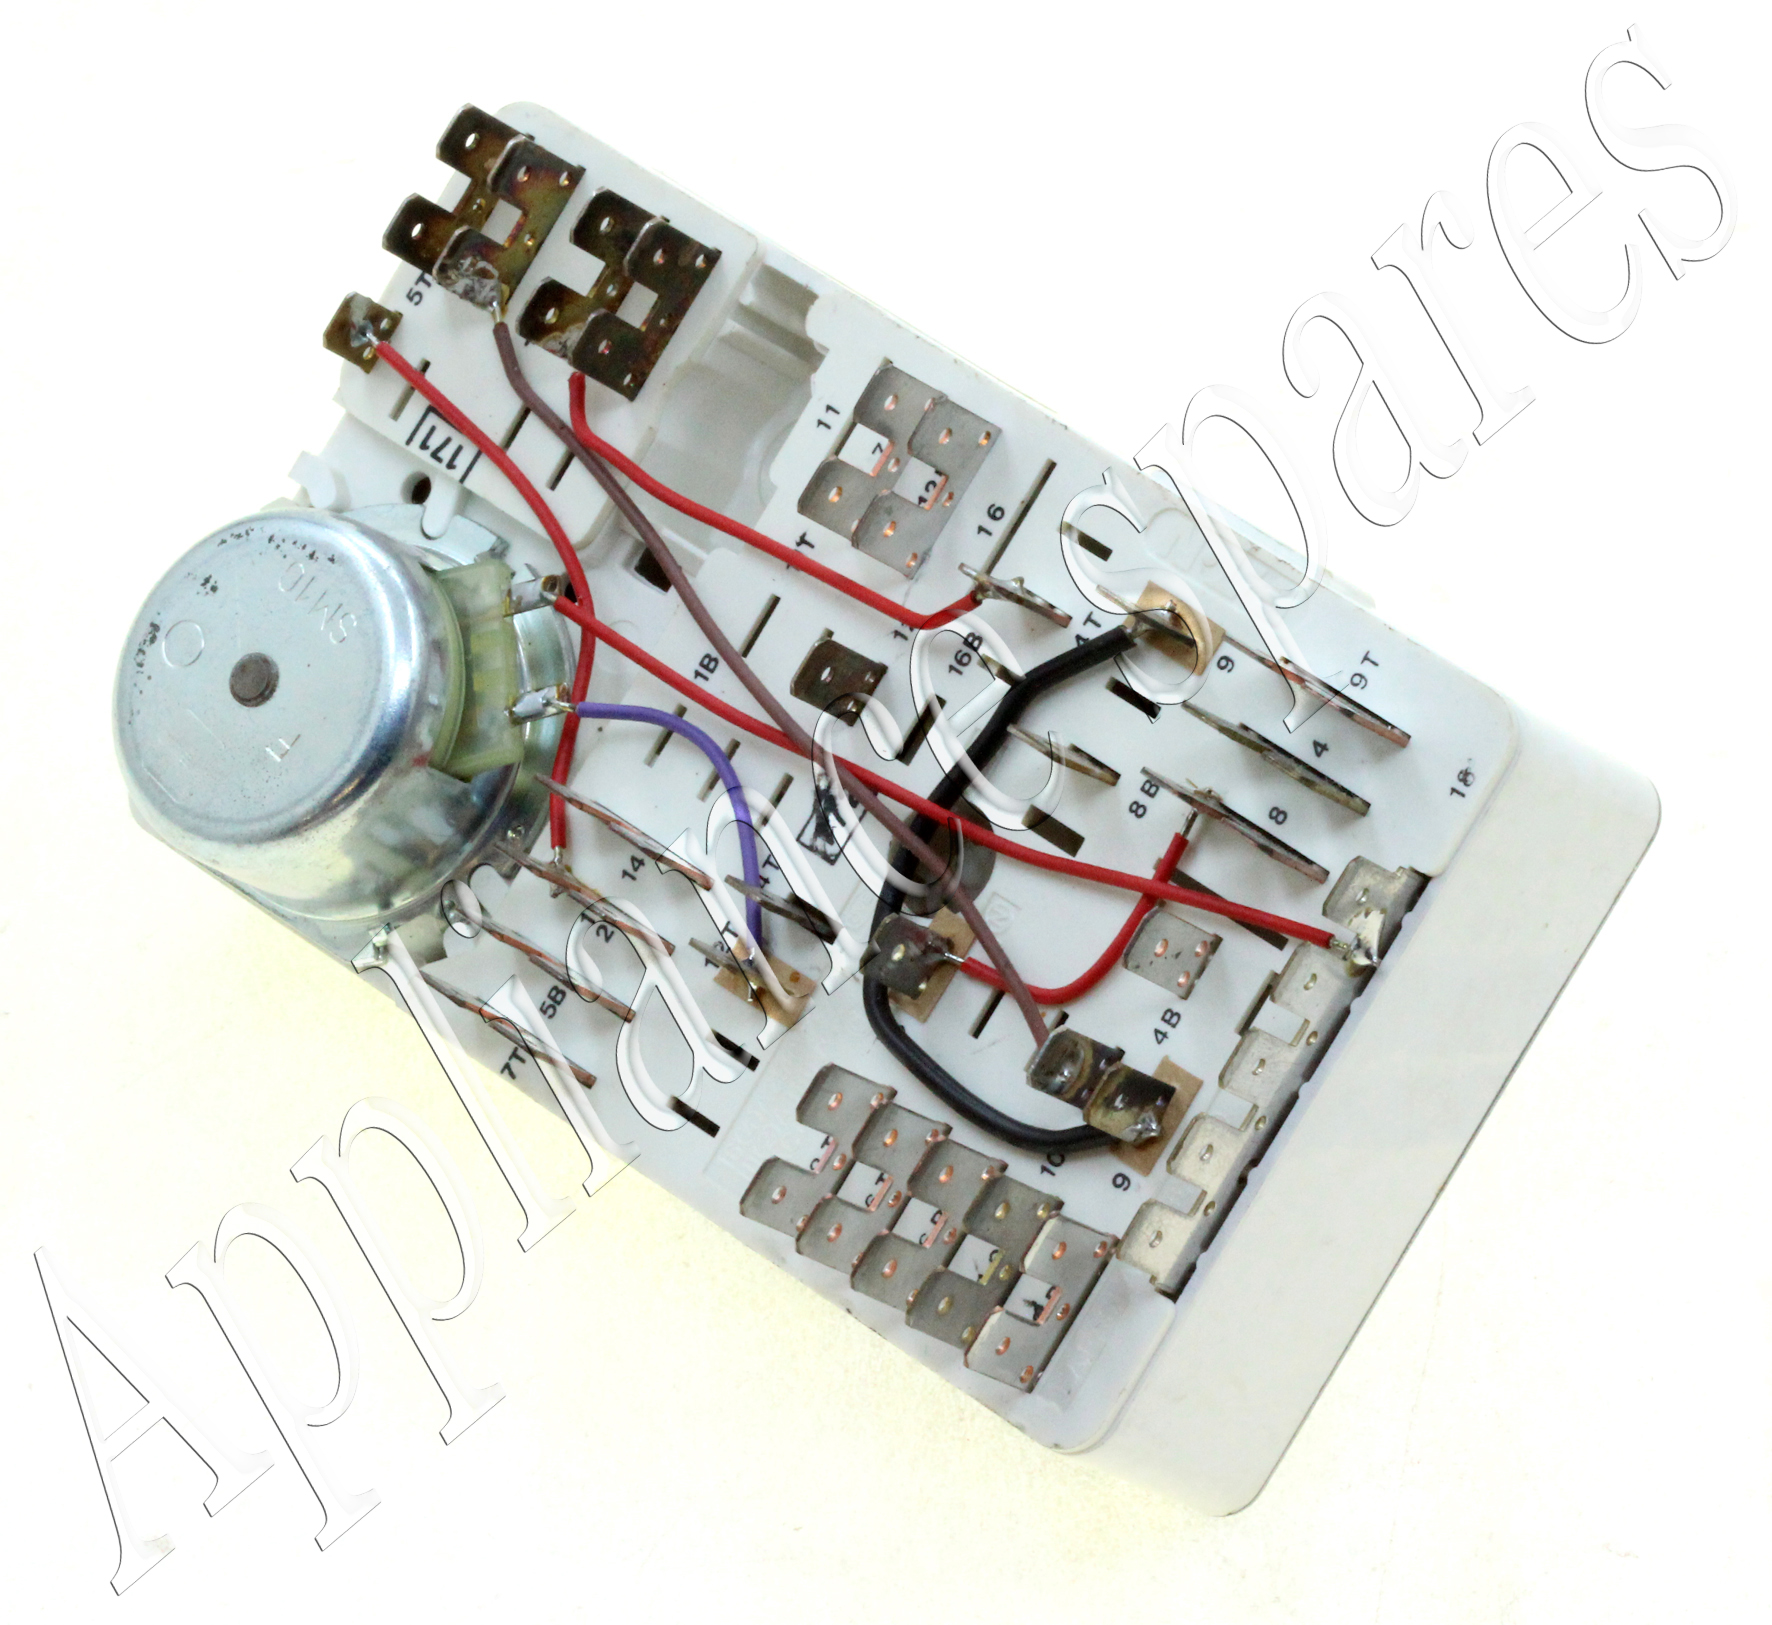 Defy Front Loader Washing Machine Timerdiscontinued Lategan And Automaid Wiring Diagram